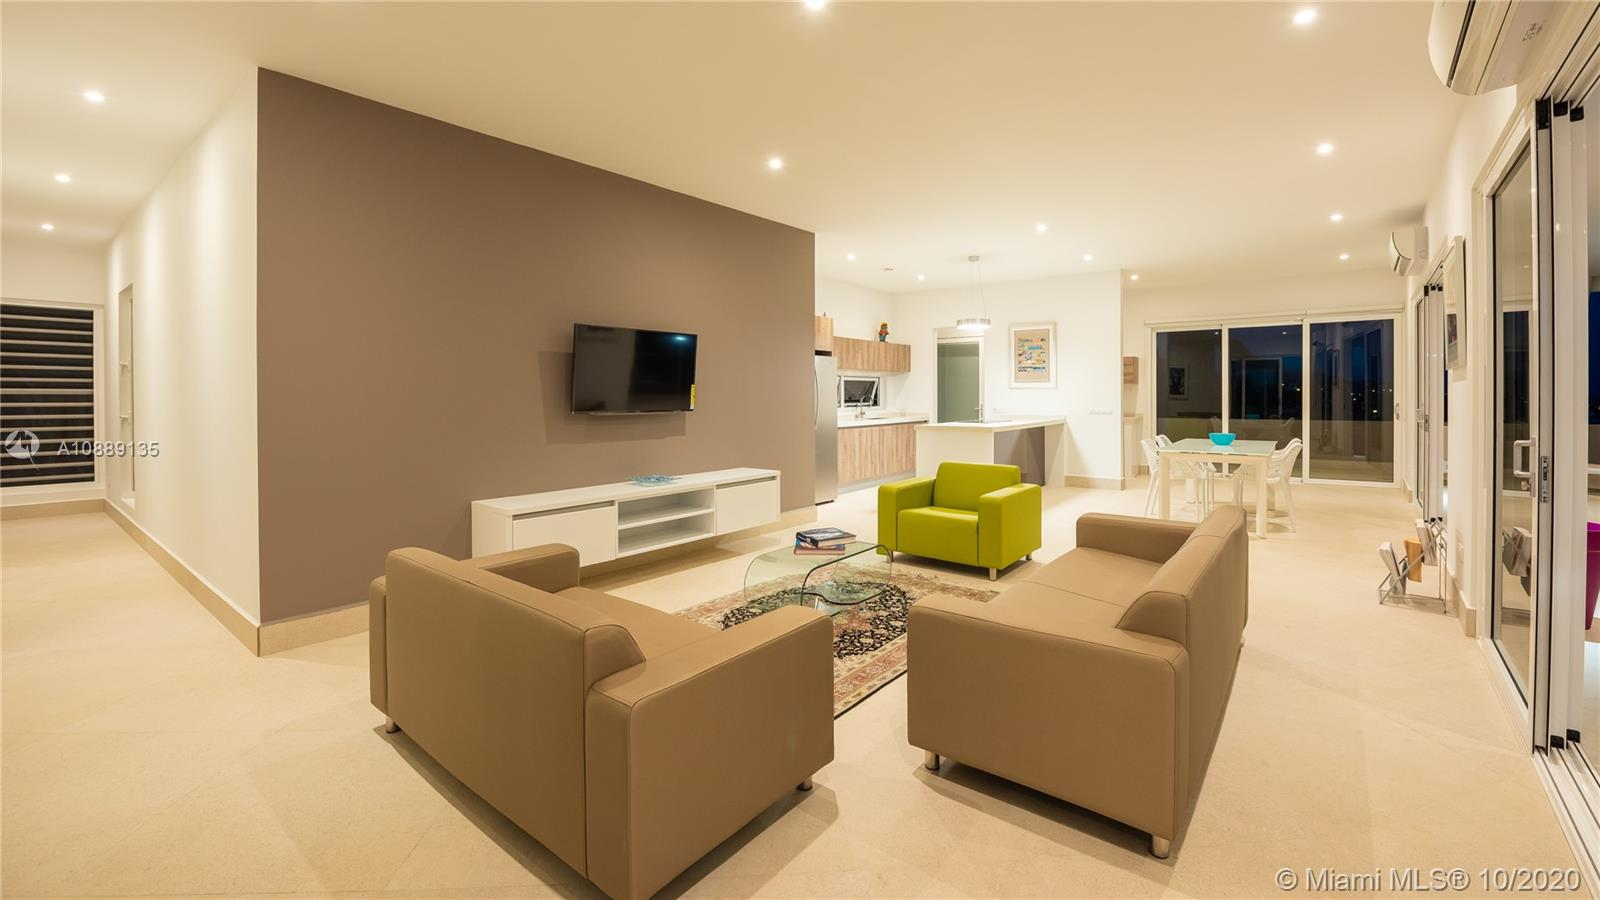 The villa is also equipped with 4G fiber optic cable for fast internet service.